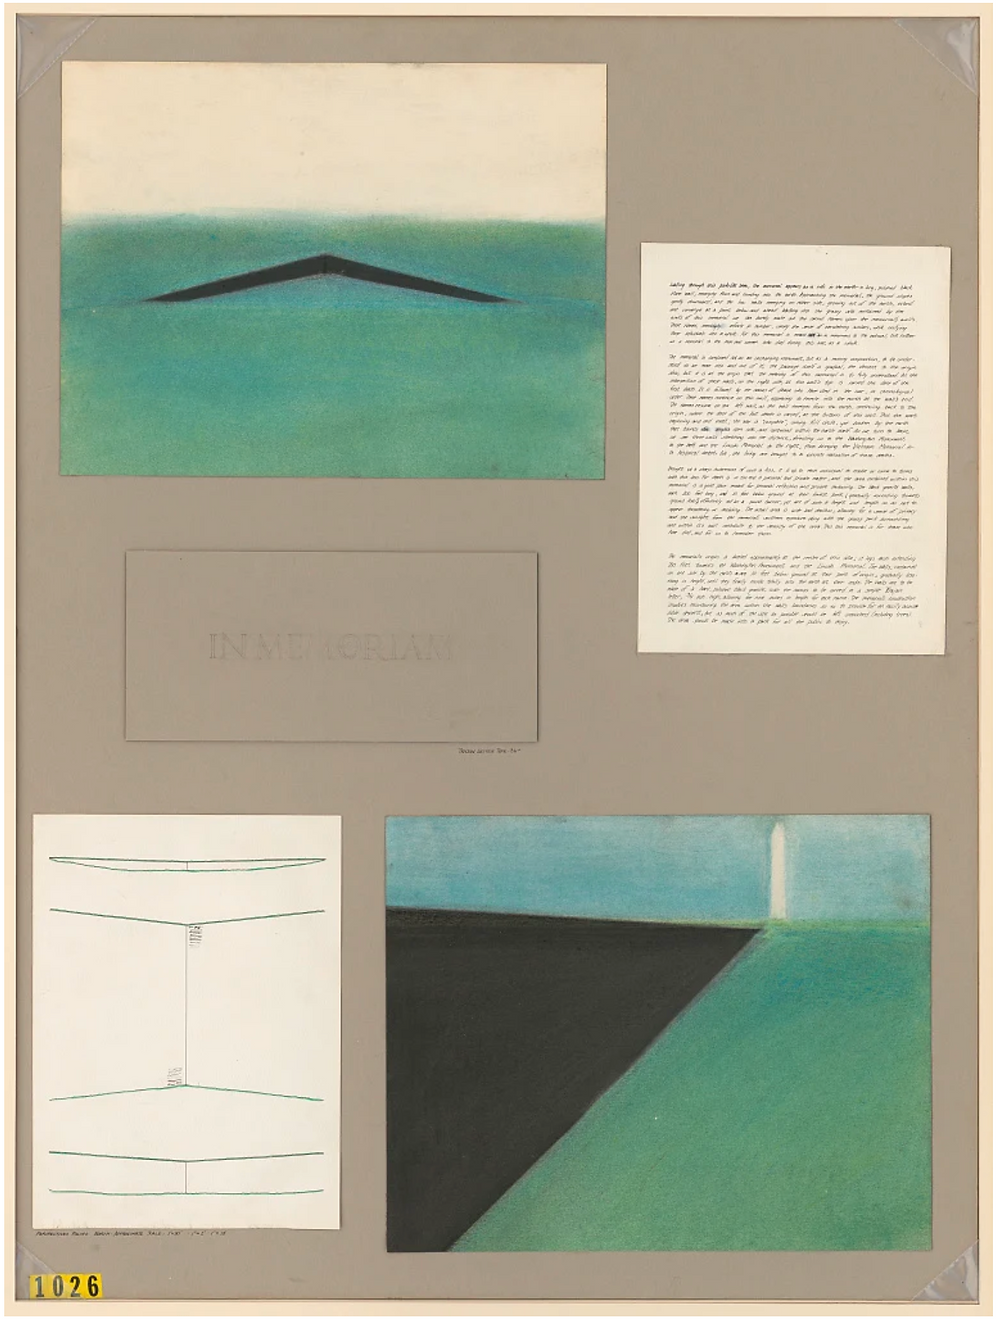 Submission, Maya Lin, proposed Vietnam Memorial